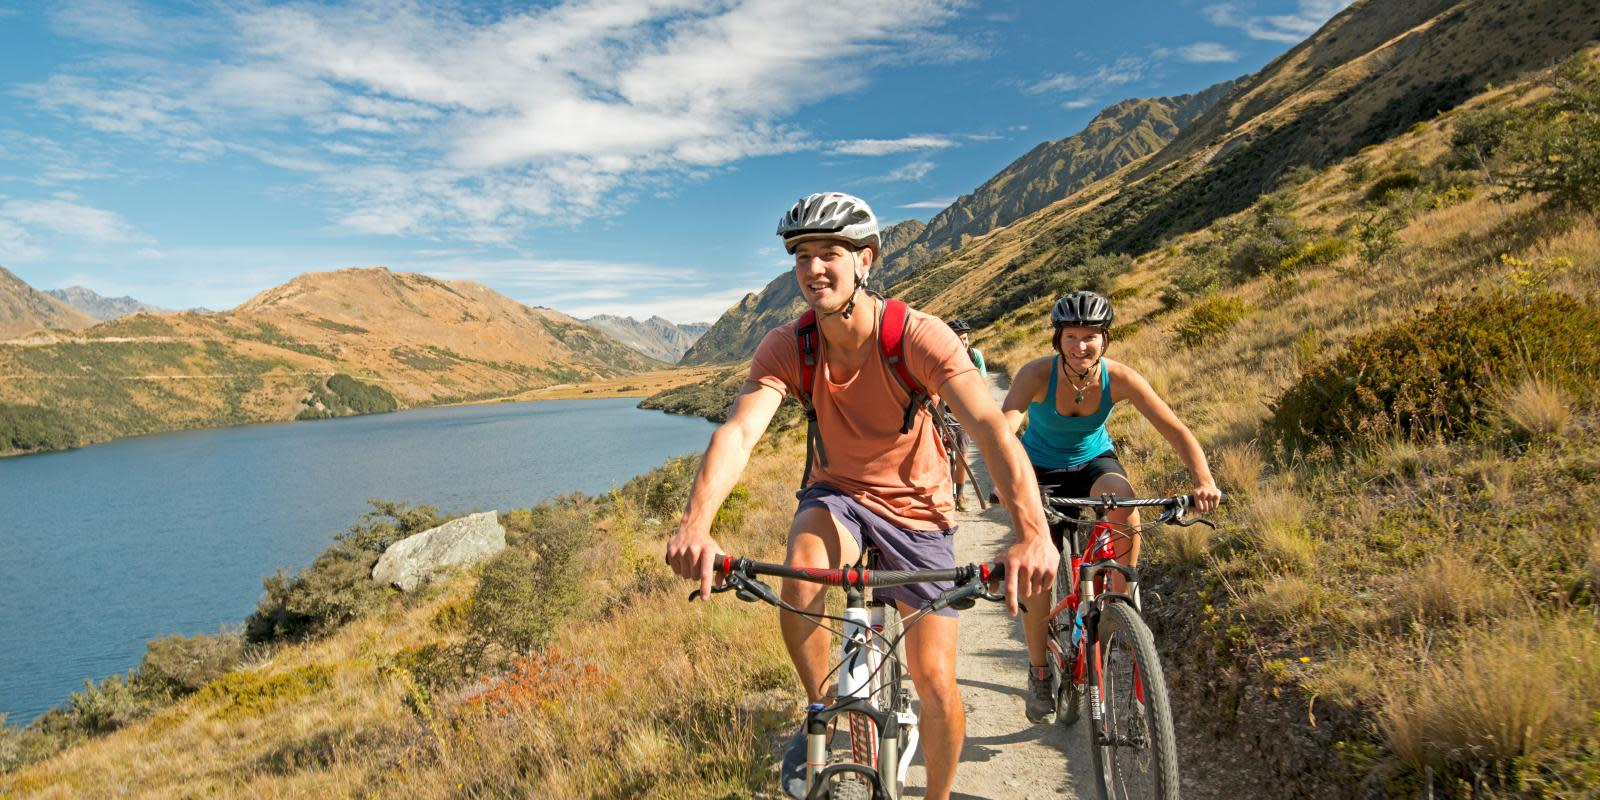 Biking at Moke Lake queenstown